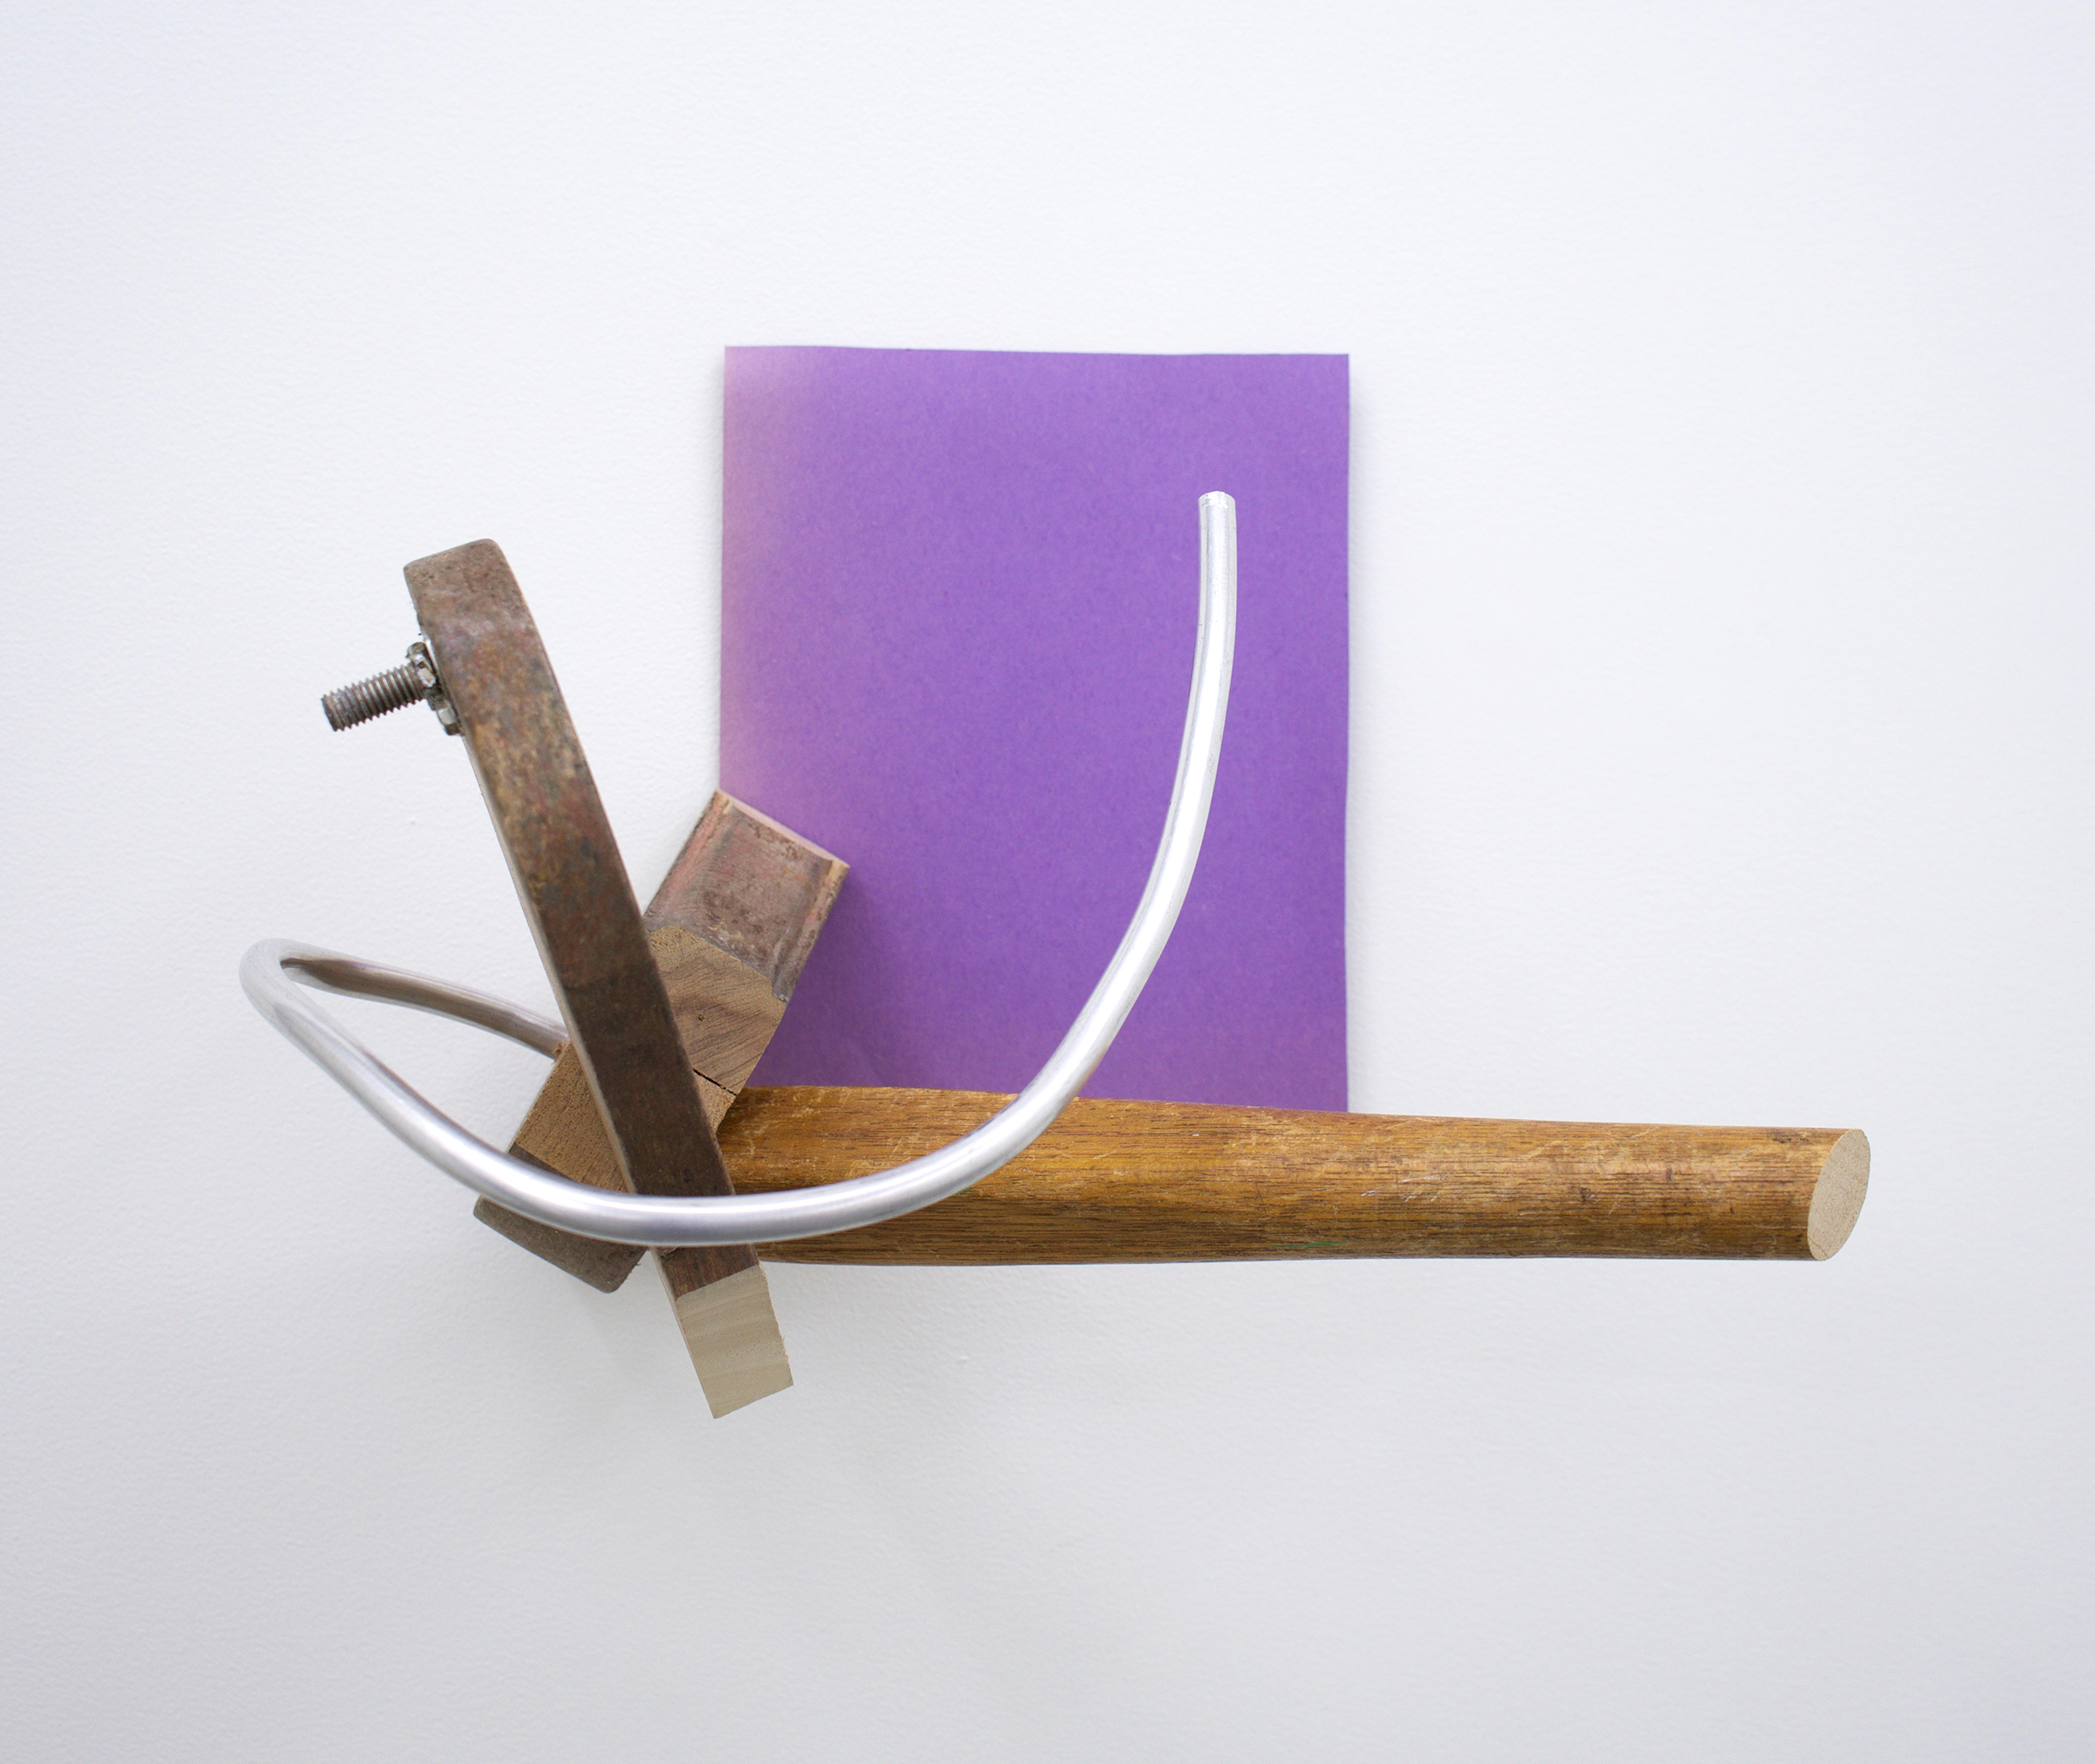 """KIRK STOLLER untitled (victory), 2018, wood, paper, stain, metal, 11.5"""" x 8.5"""" x 14.5"""""""